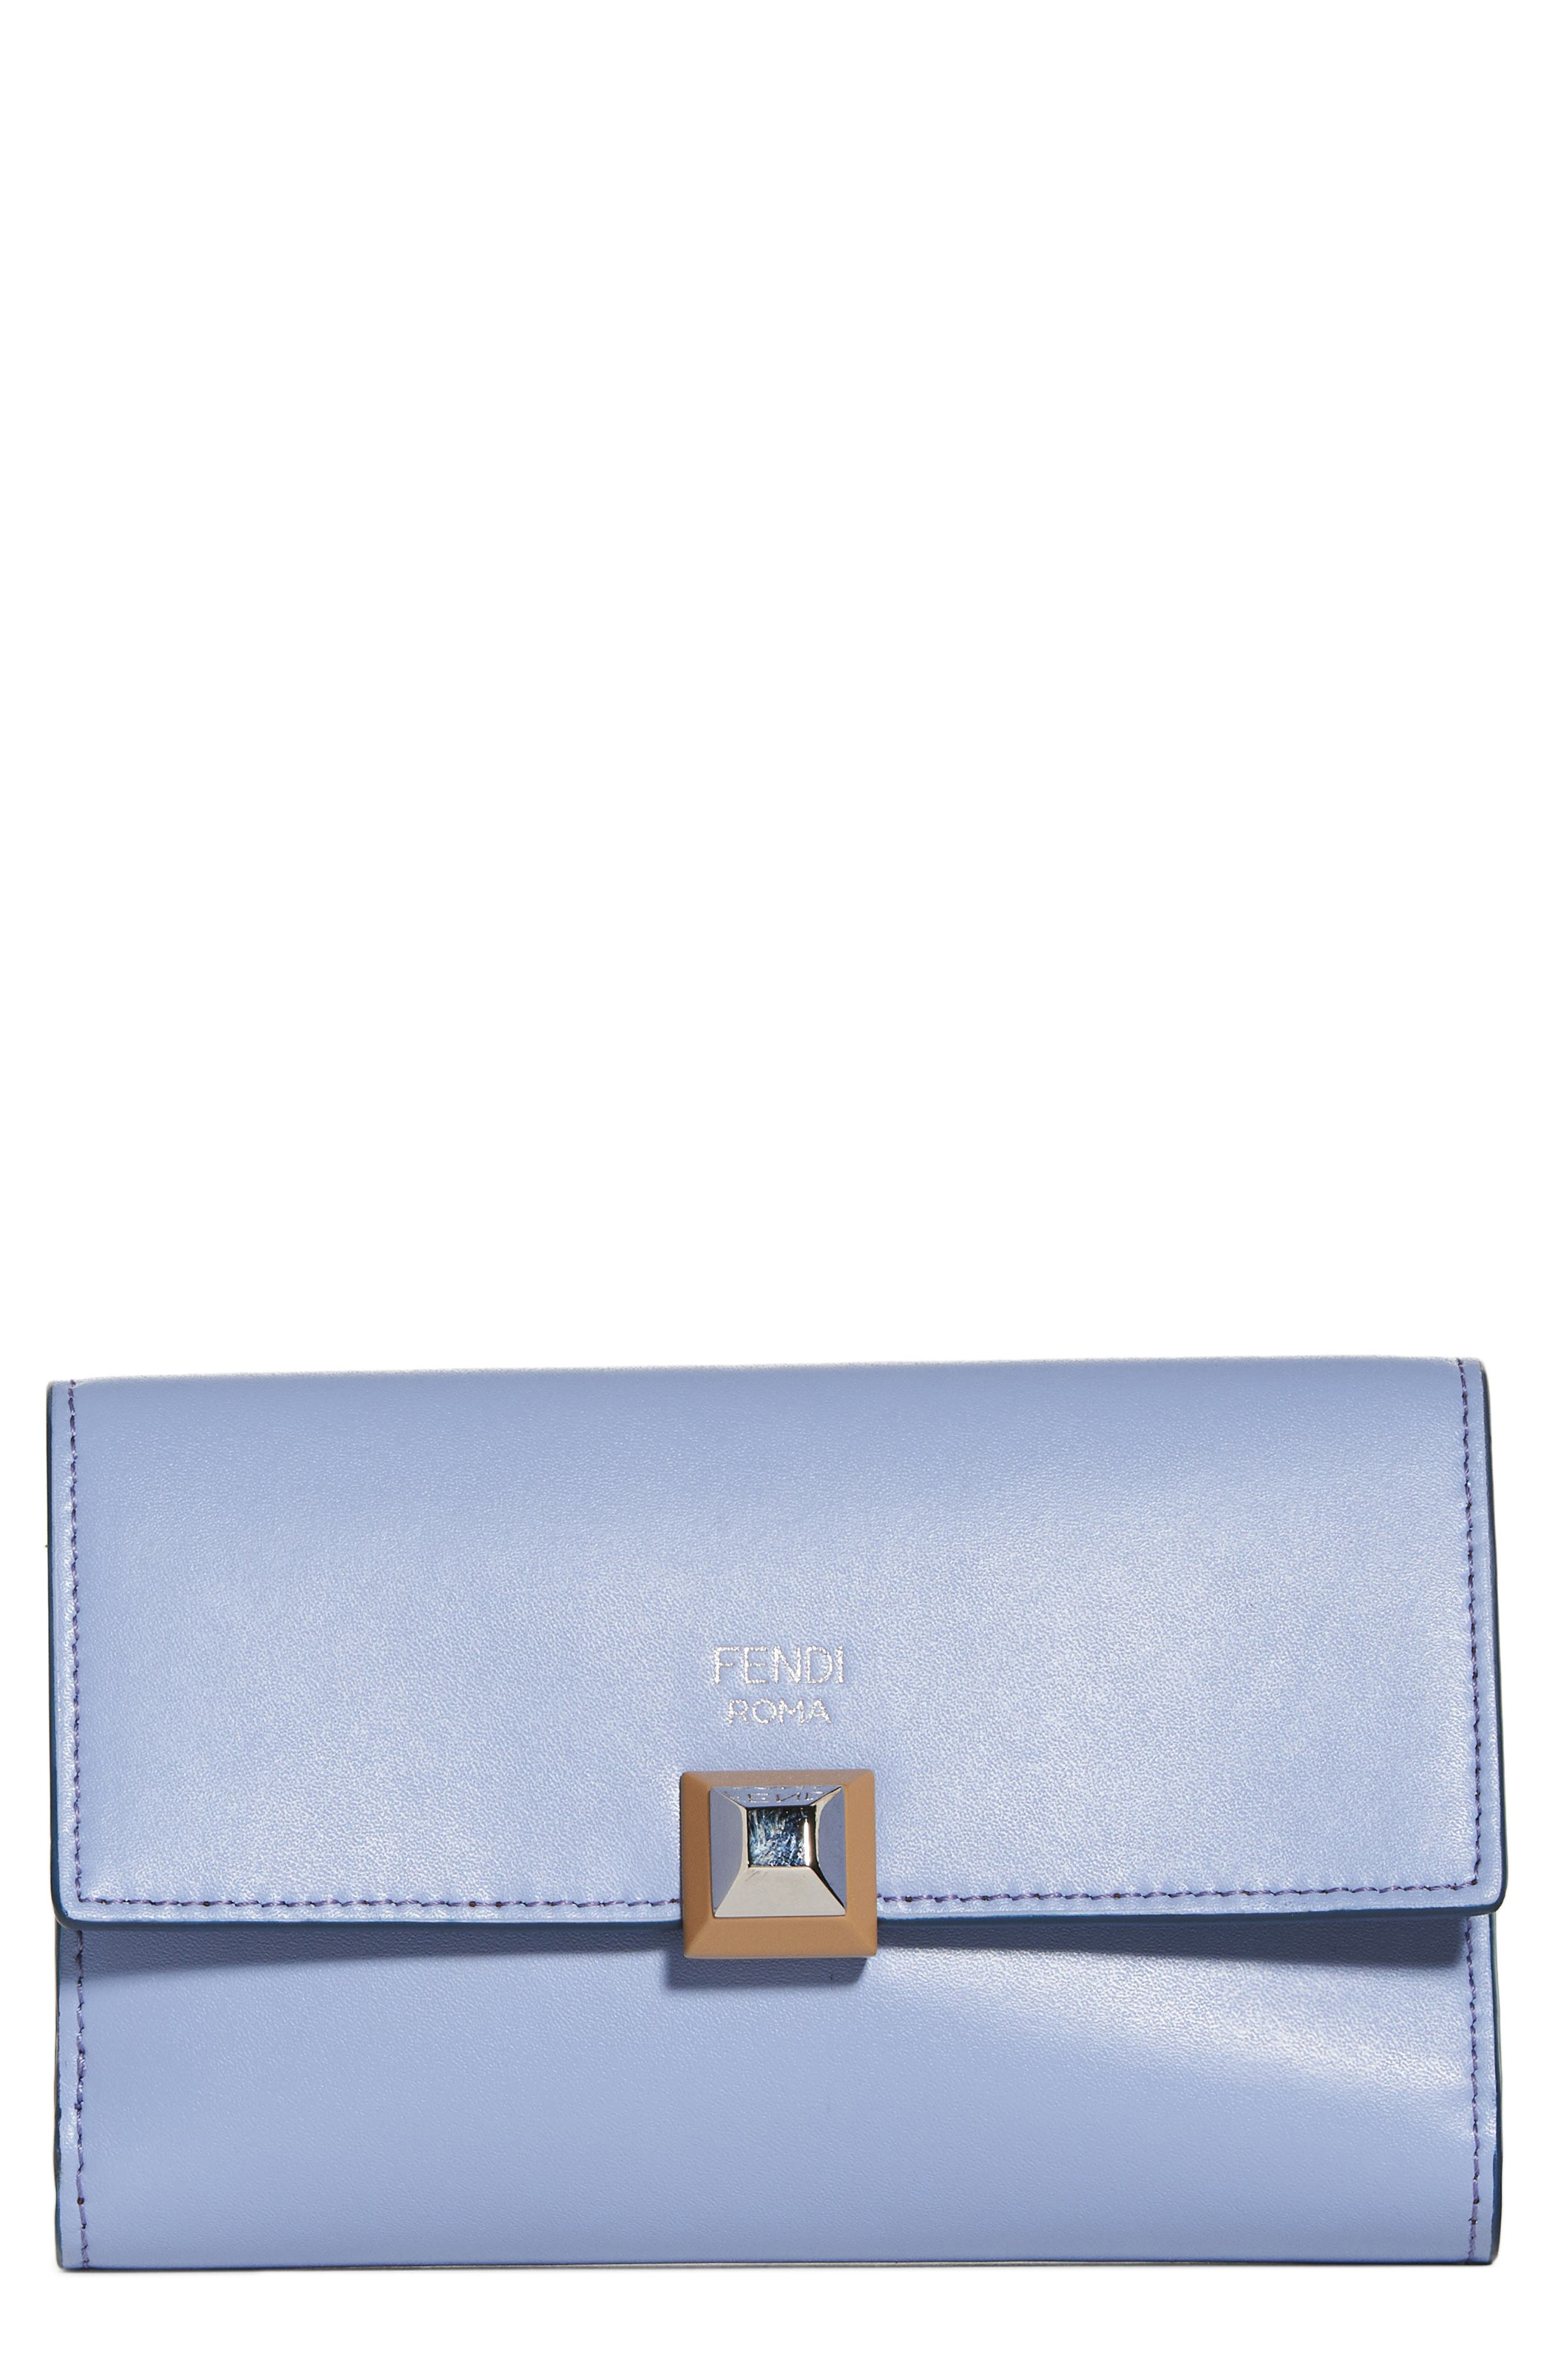 Medium Leather Wallet,                             Main thumbnail 1, color,                             Sky